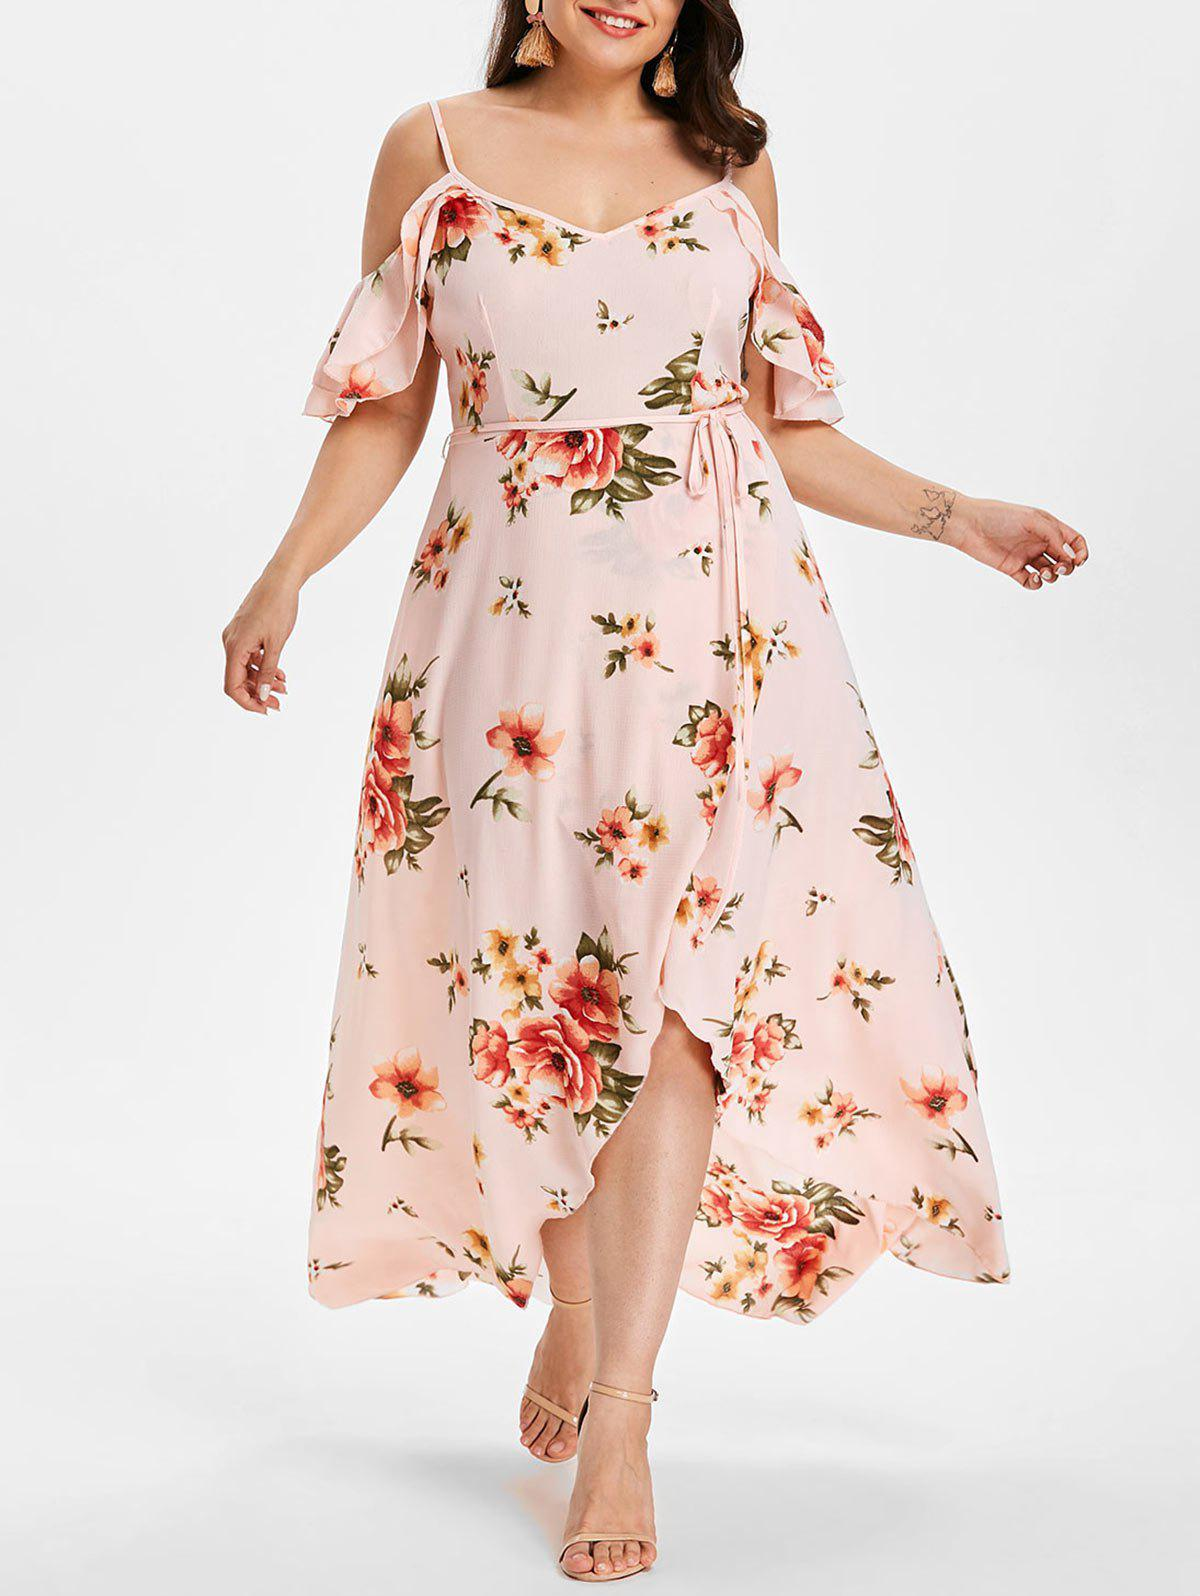 29% OFF] Plus Size Hawaiian Cold Shoulder Maxi Dress | Rosegal